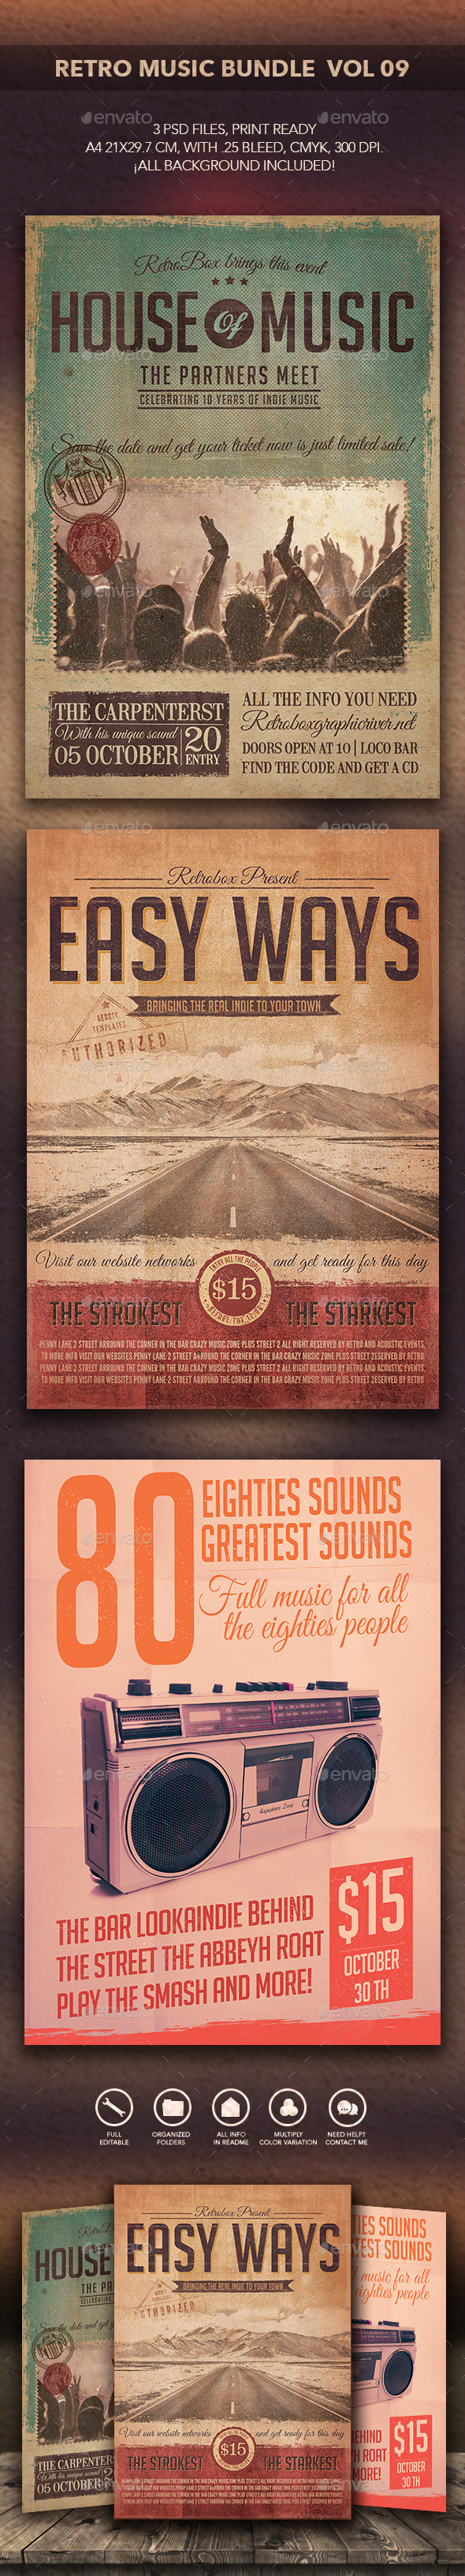 GraphicRiver Retro Music Bundle Vol 09 10850036